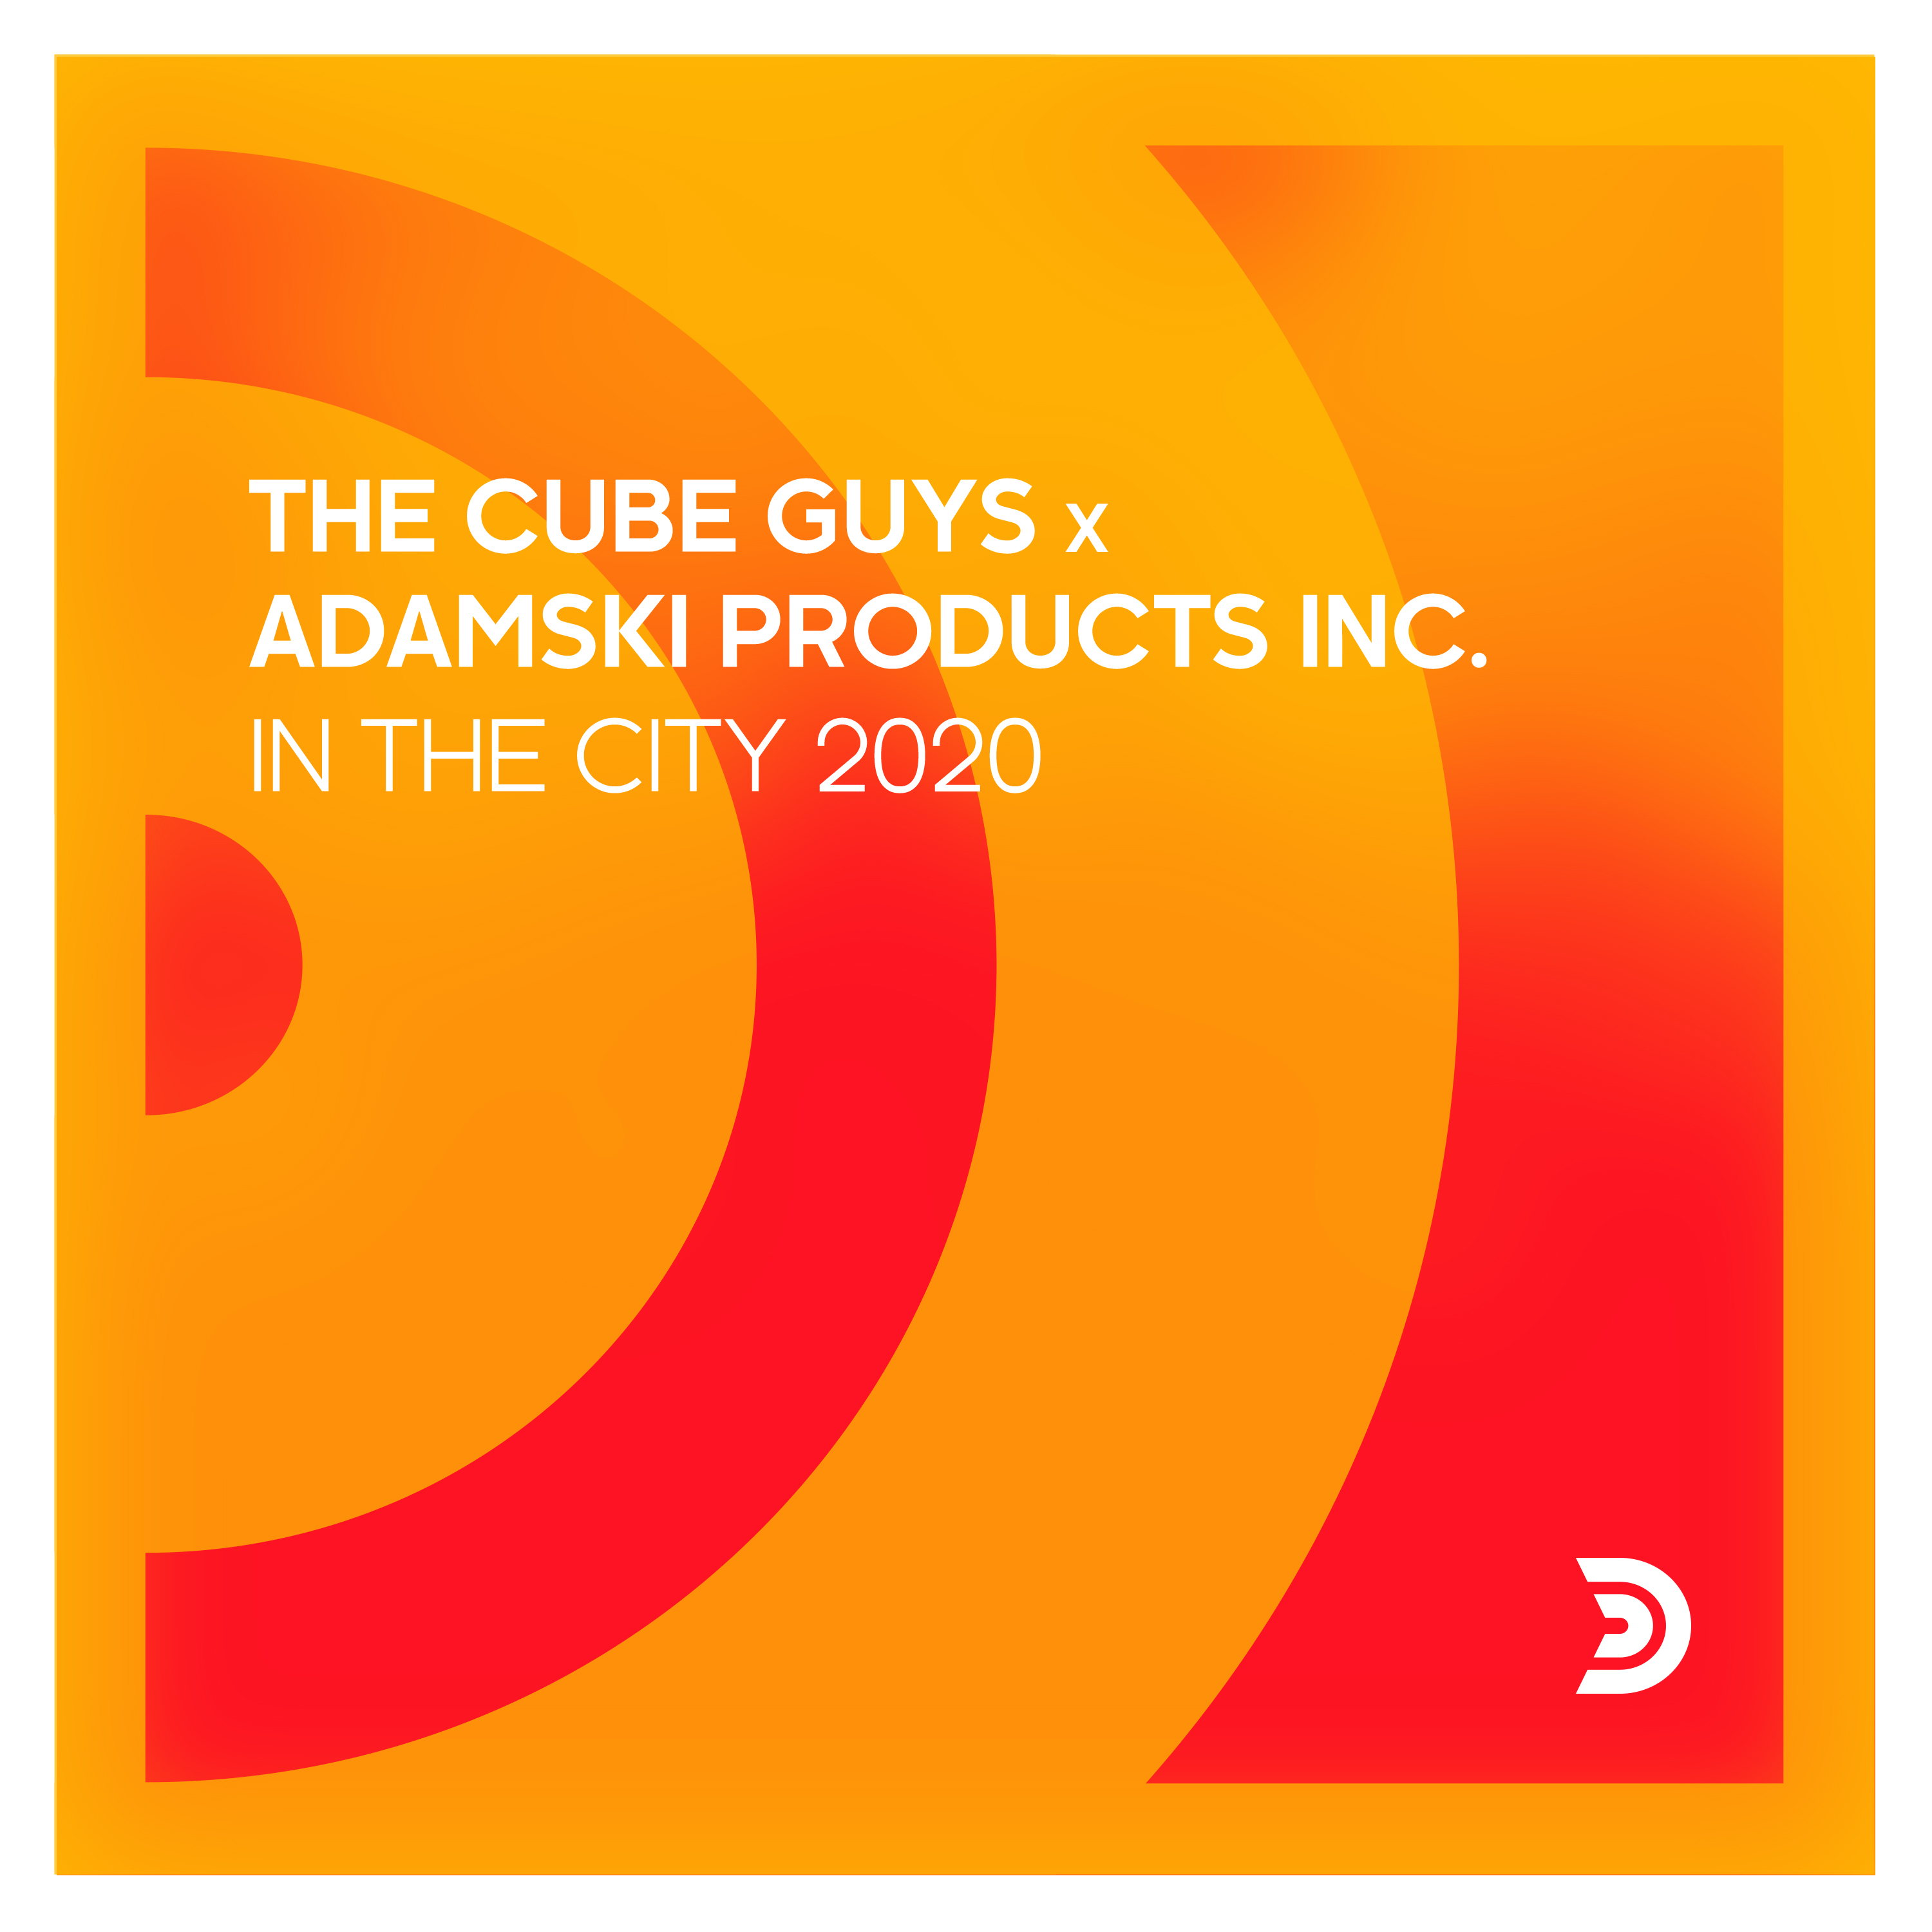 THE CUBE GUYS x ADAMSKI PRODUCTS INC. - In the city 2020